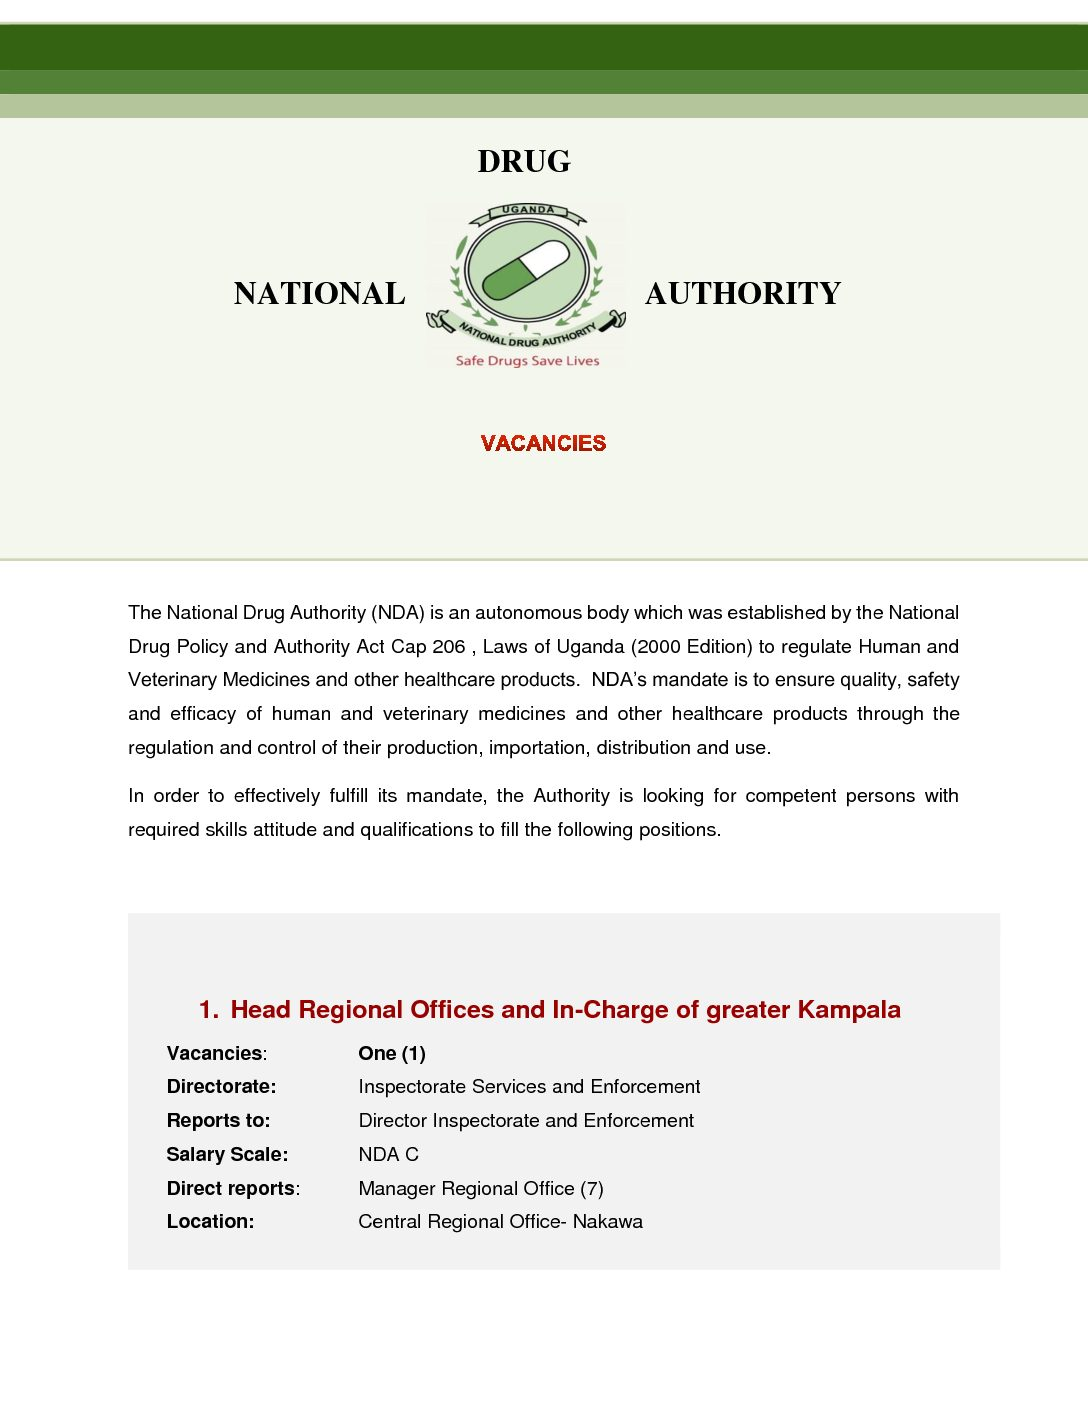 Jobs At National Drug Authority - East African Business Week